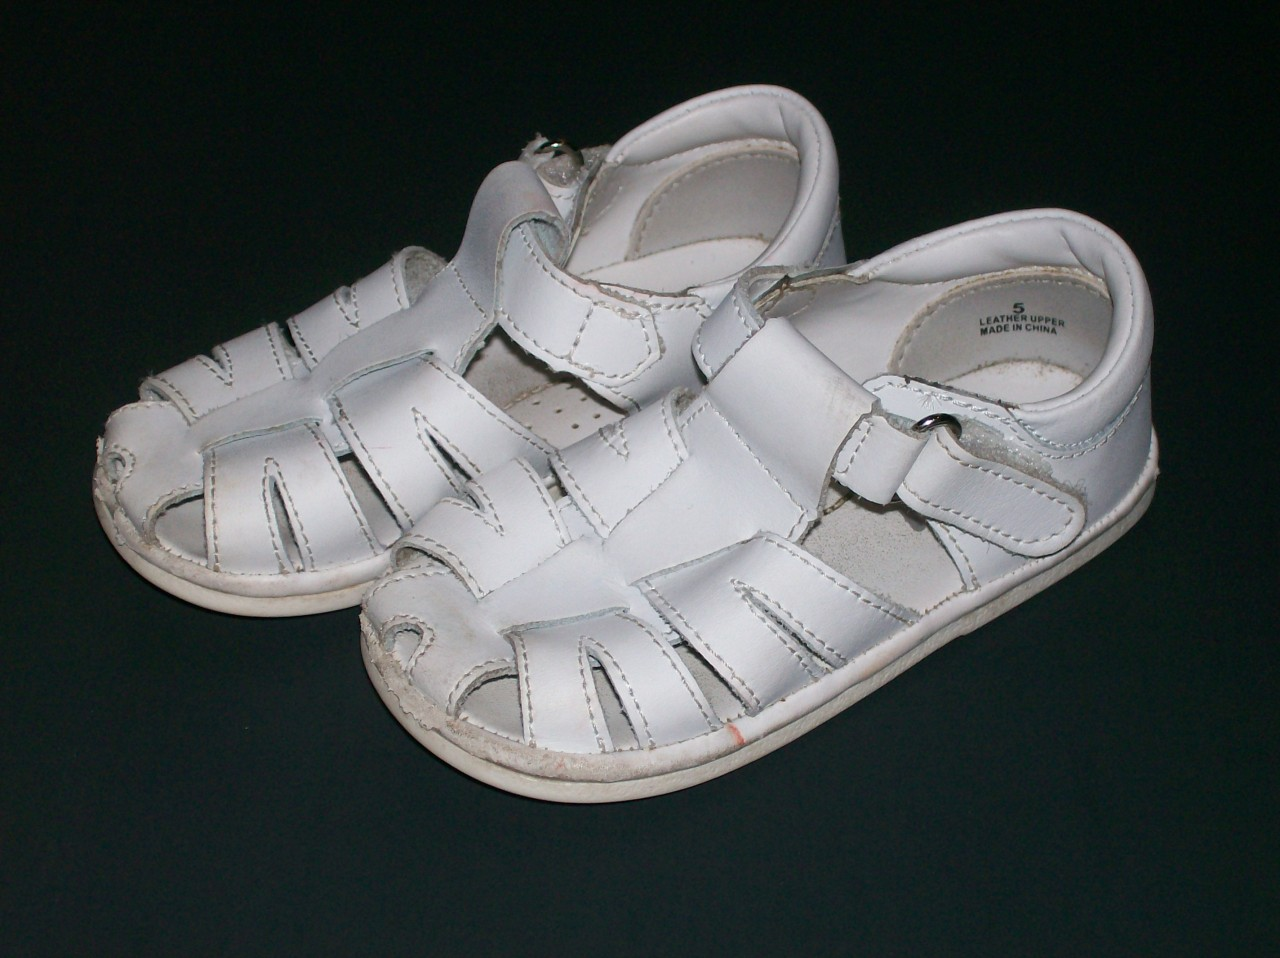 L AMOUR ANGEL BABY WALKING SHOES WHITE SANDALS SZ 5